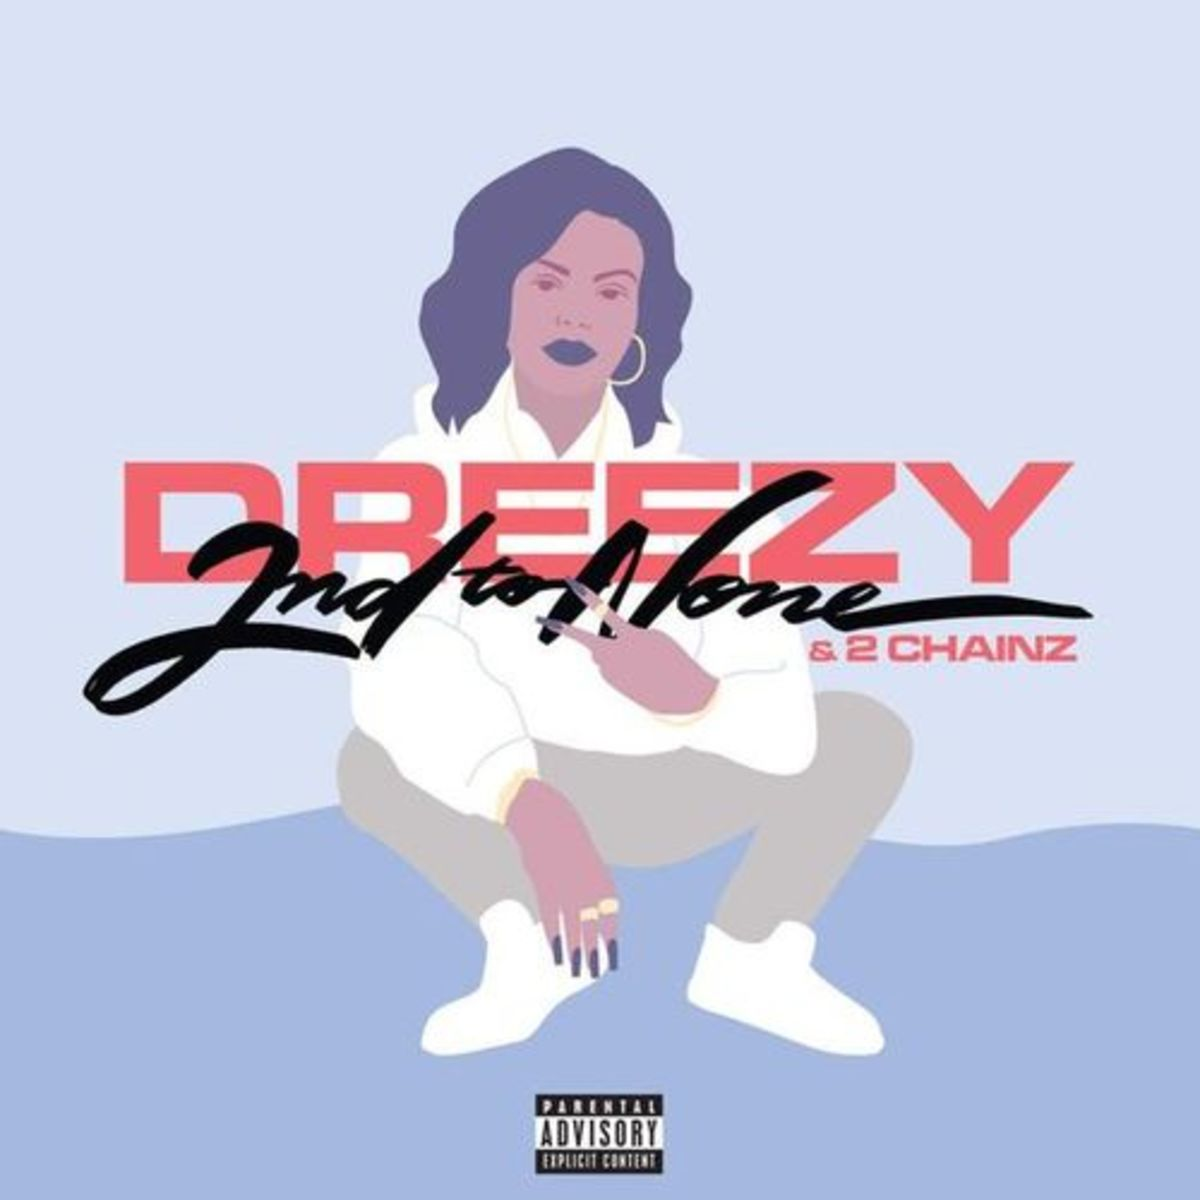 dreezy-2nd-to-none.jpg